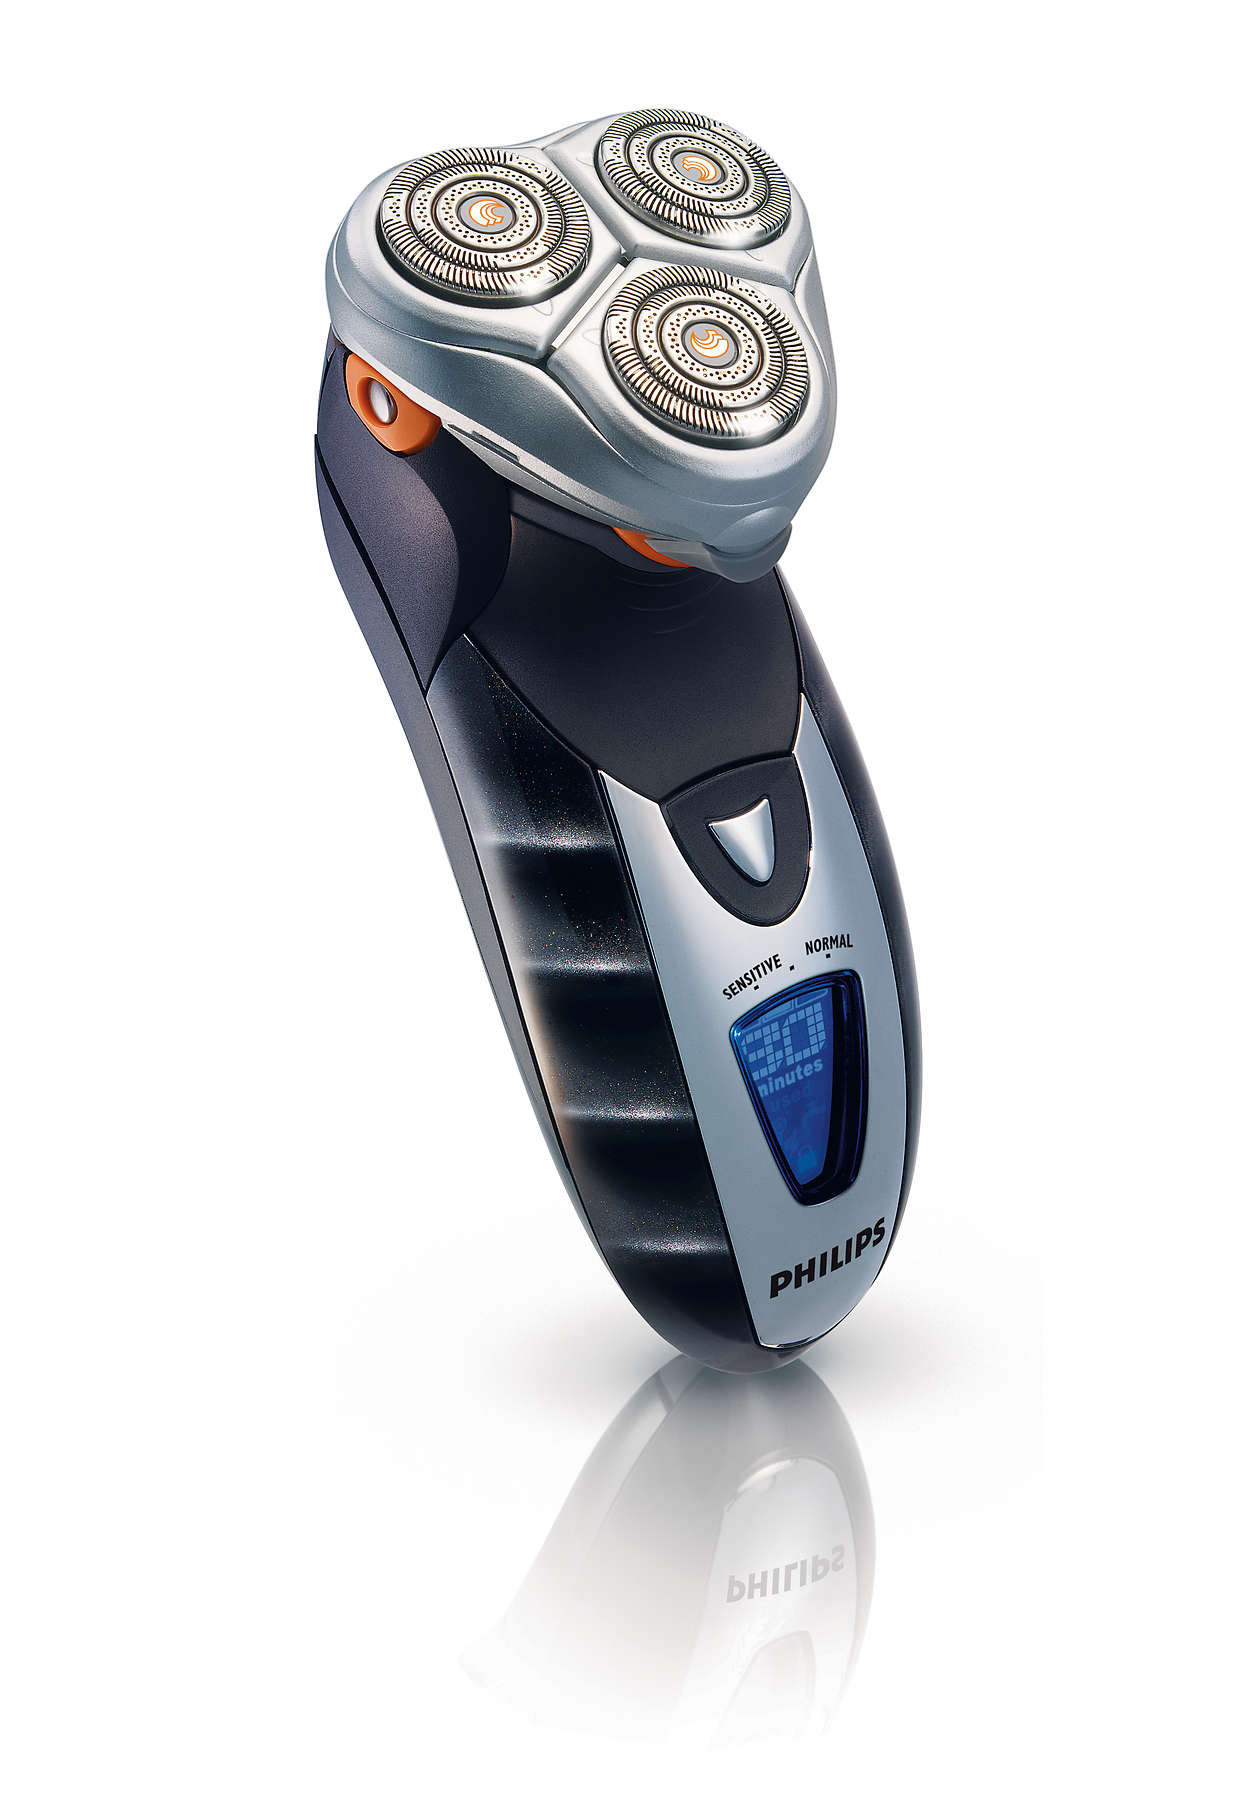 The best shaver from the world's no. 1